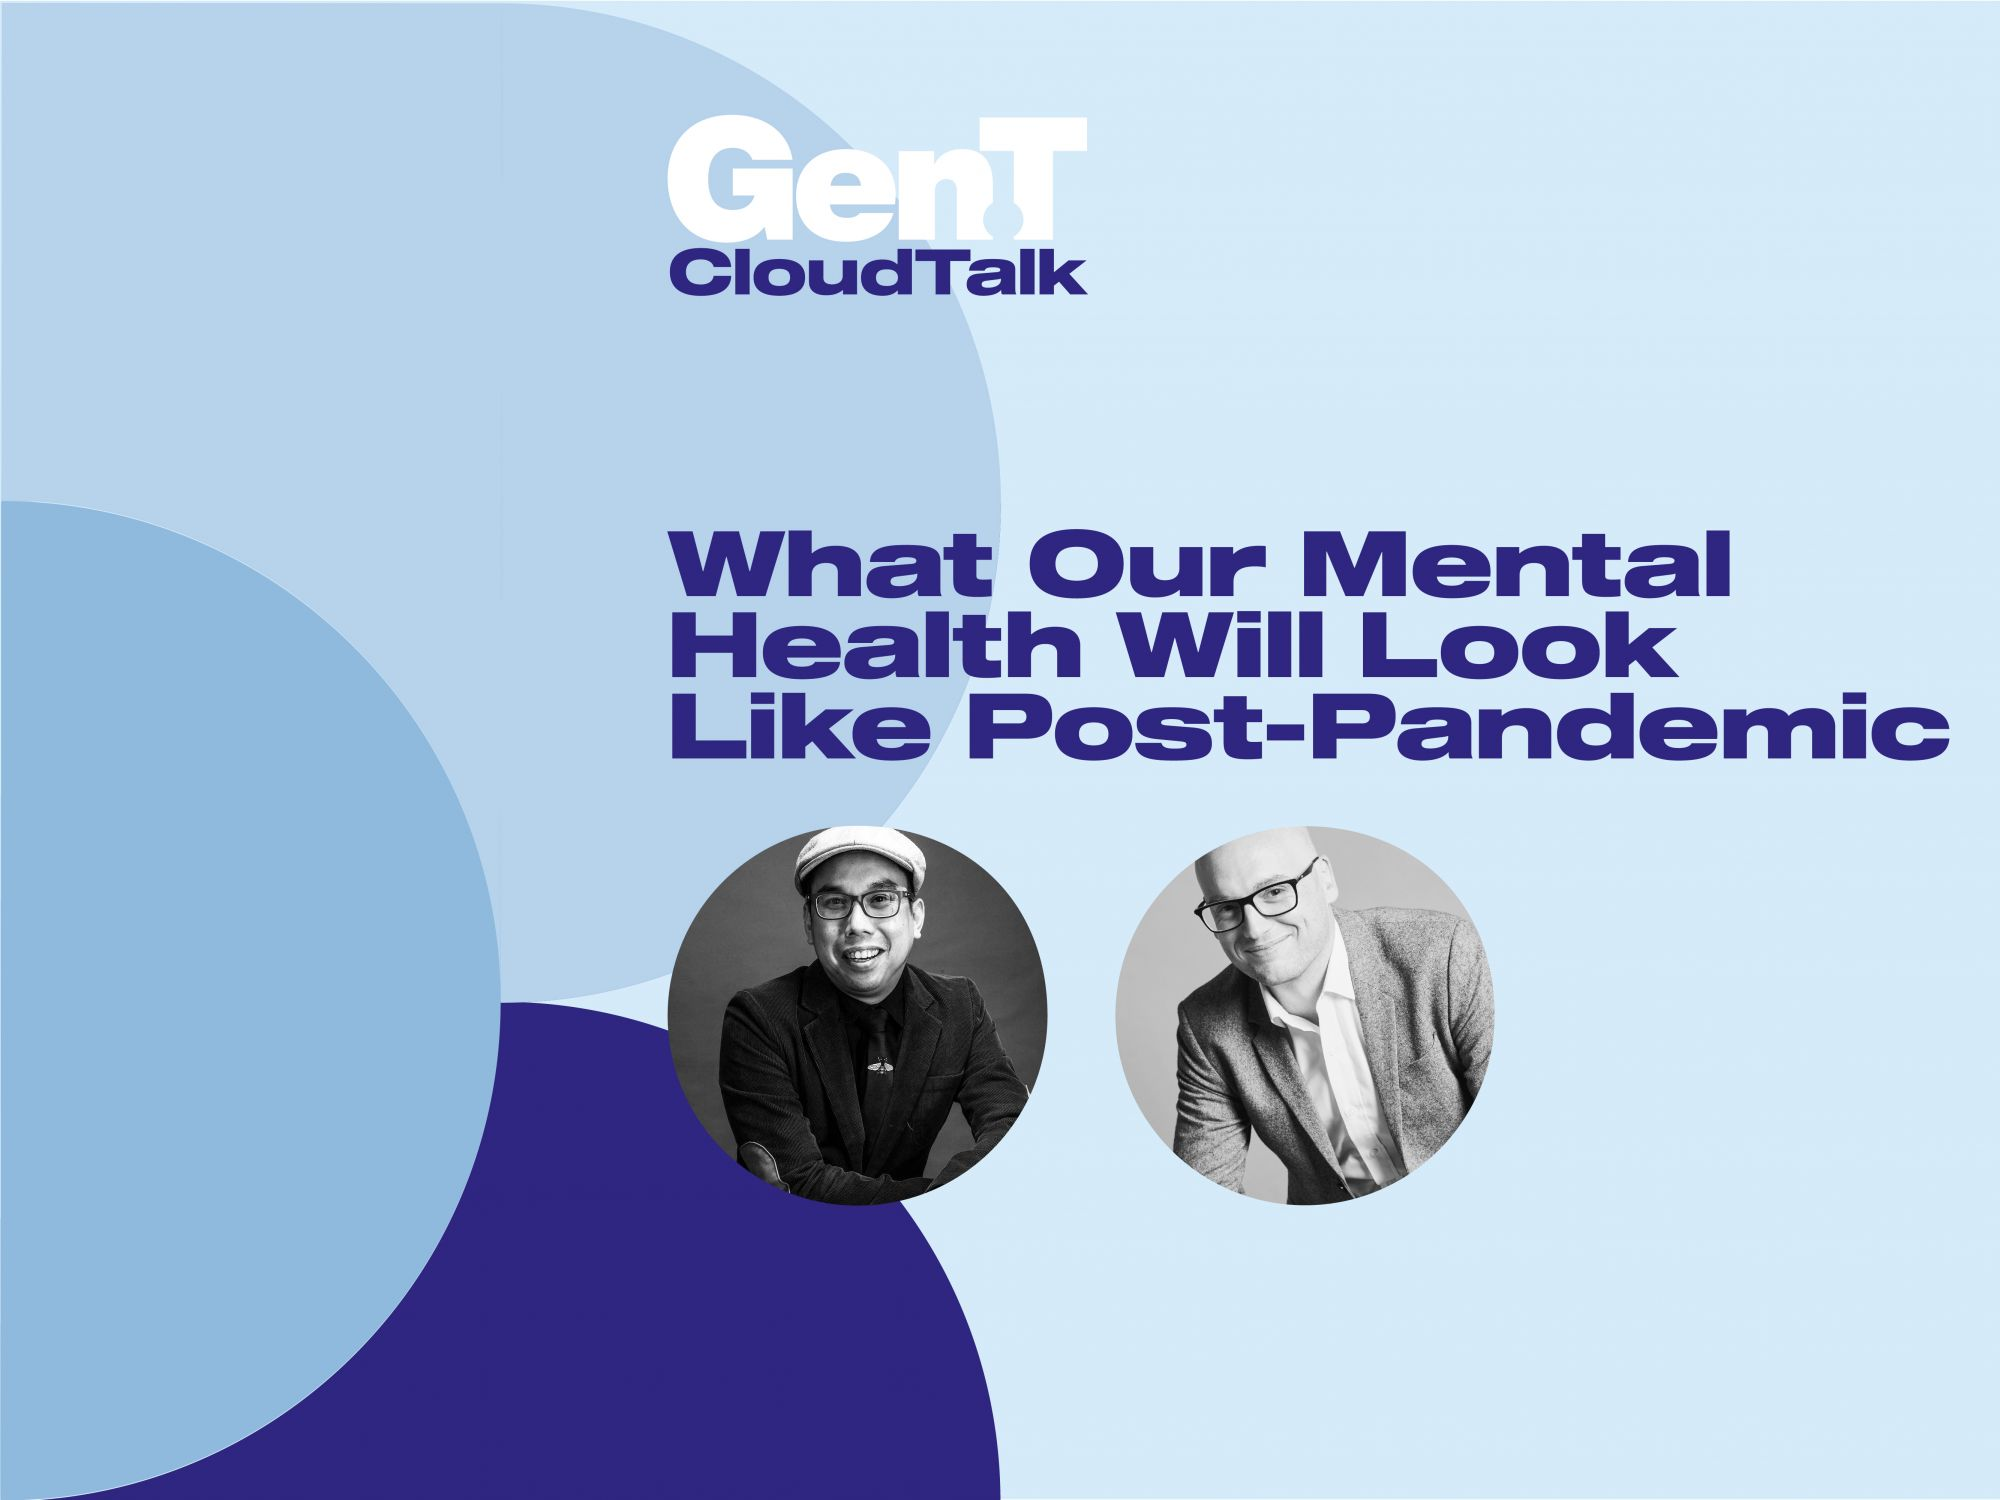 Cloud Talk: What Our Mental Health Will Look Like Post-Pandemic